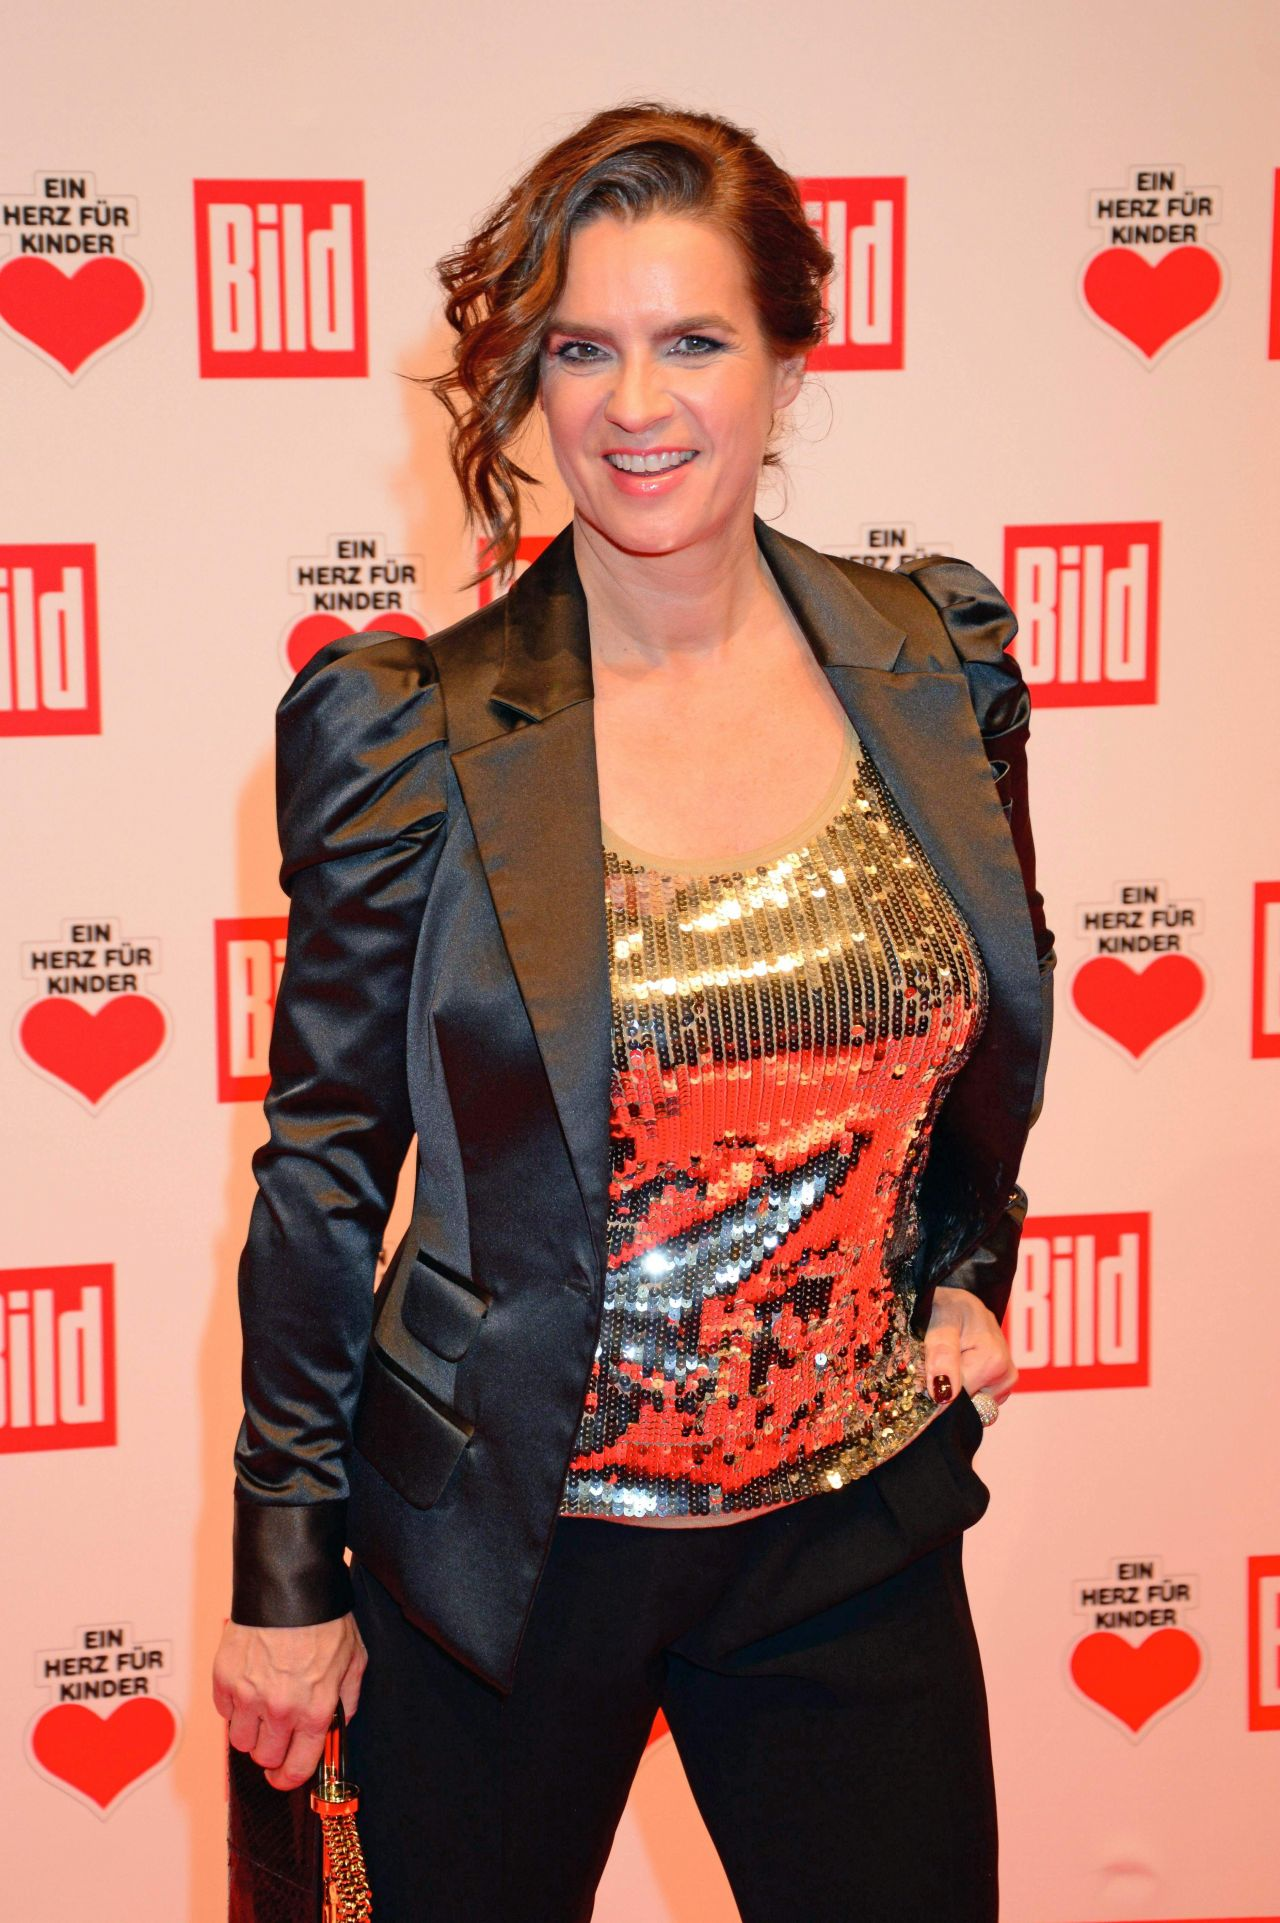 Katarina Witt - A Heart for Children 2014 Charity Gala in Berlin